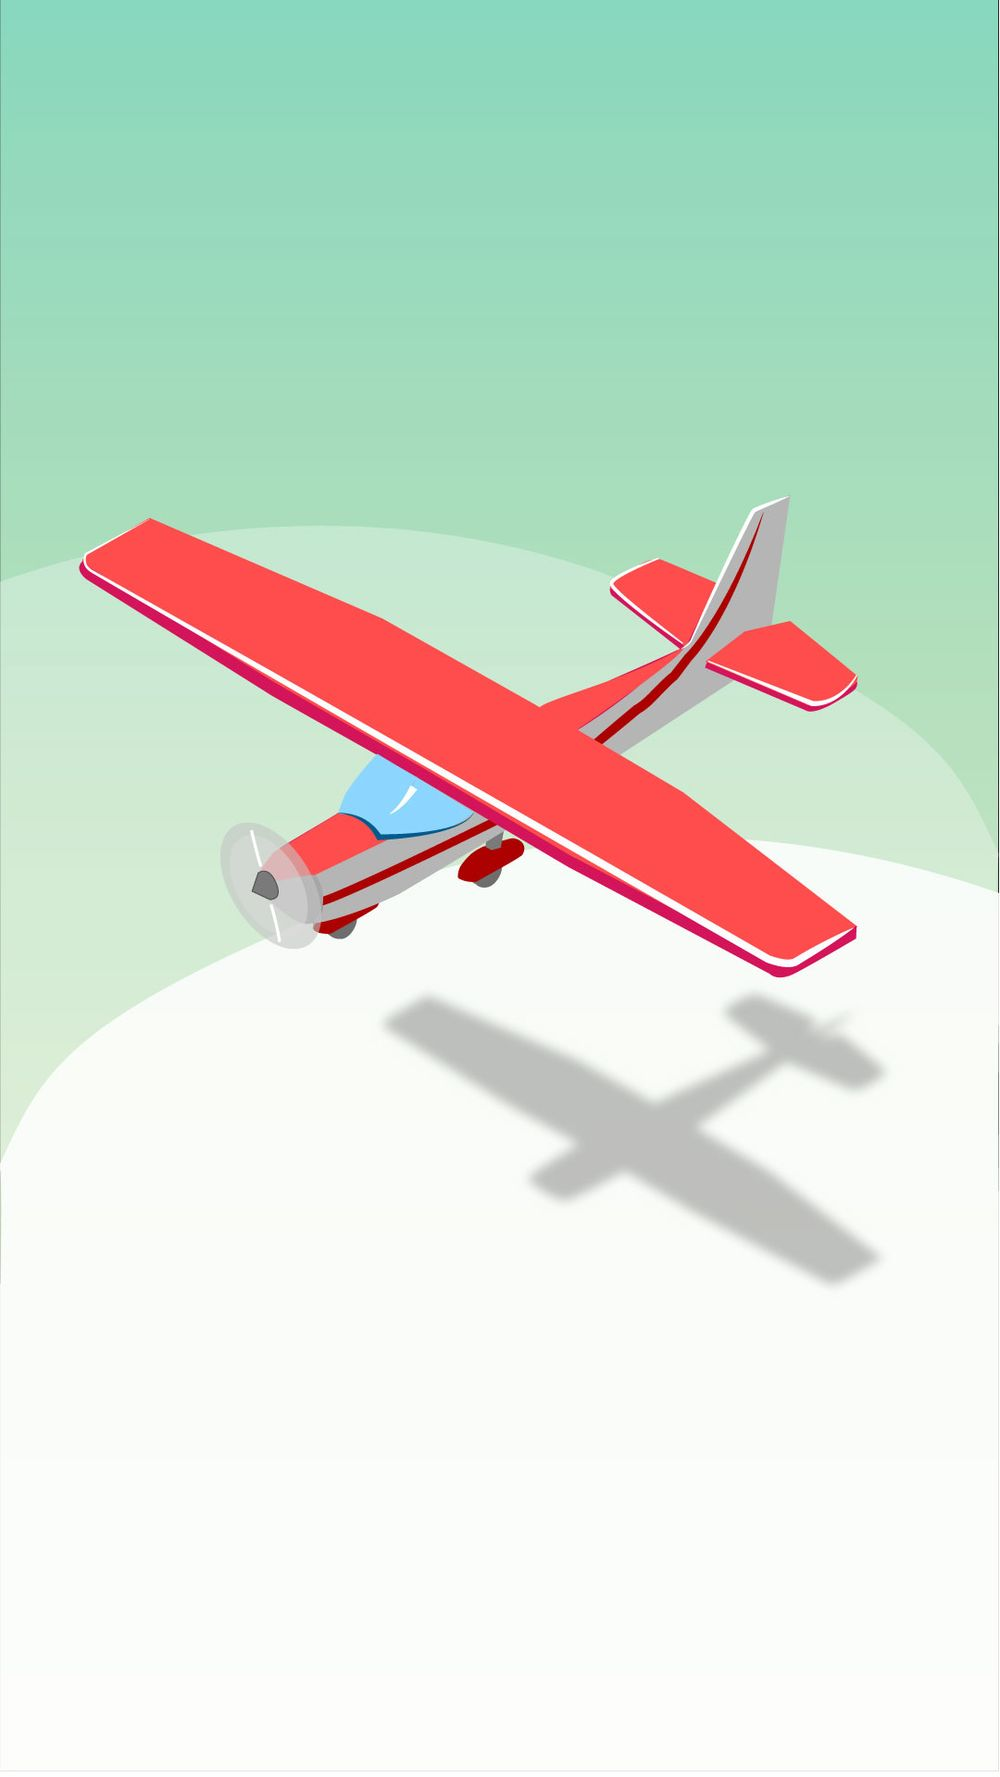 Airplane - image 1 - student project